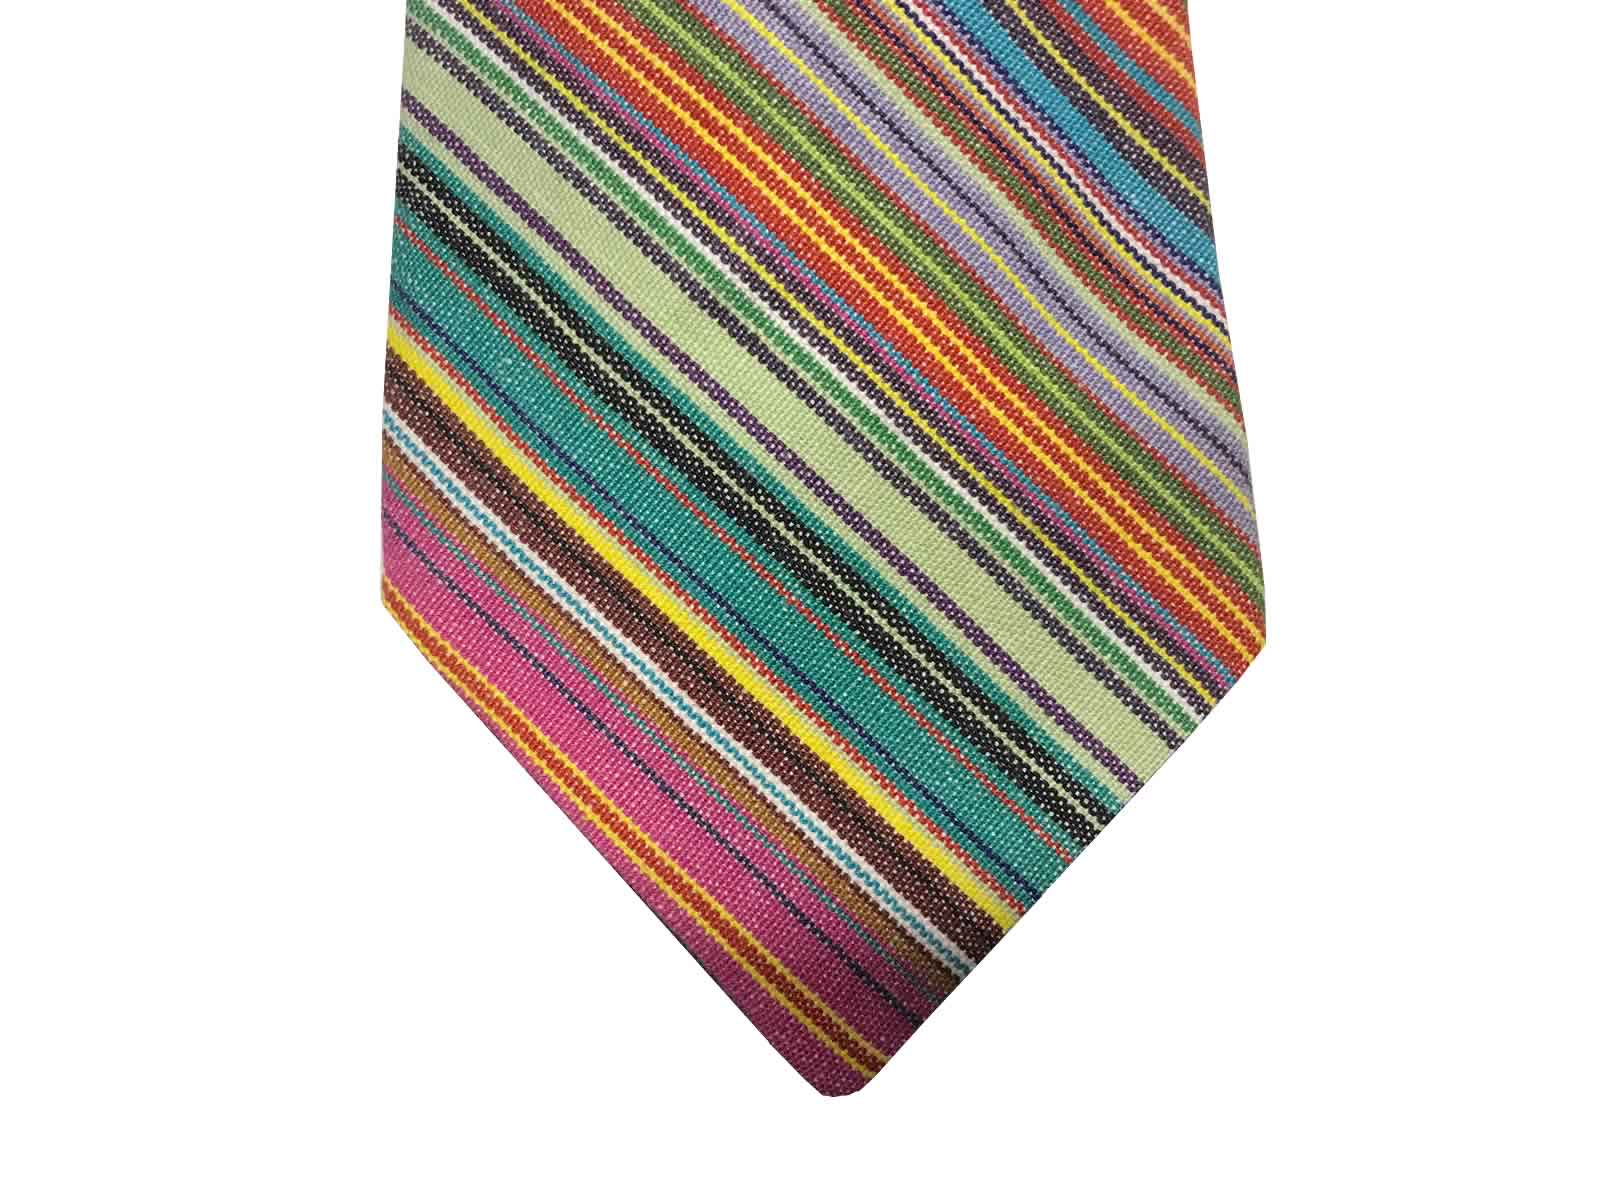 Multi Stripe Tie from the Stripes Company